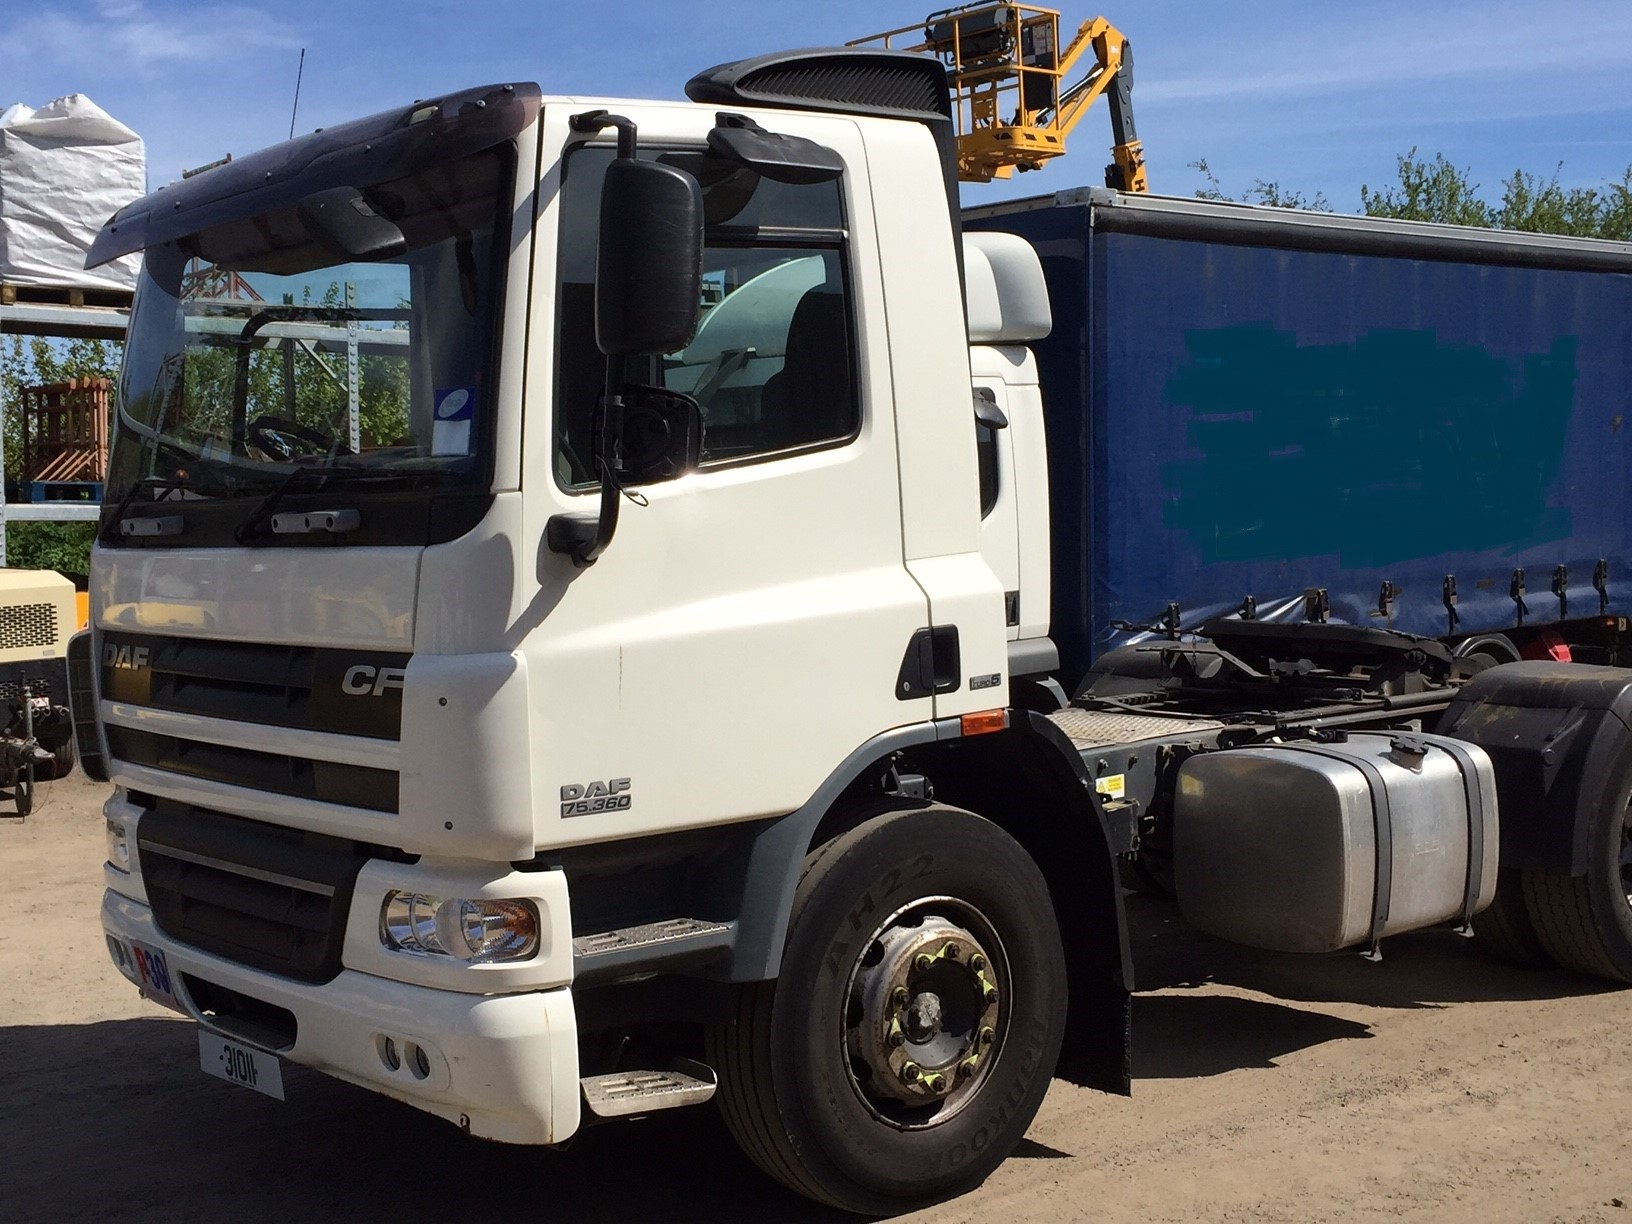 DAF CF75 Artic Unit Image 1